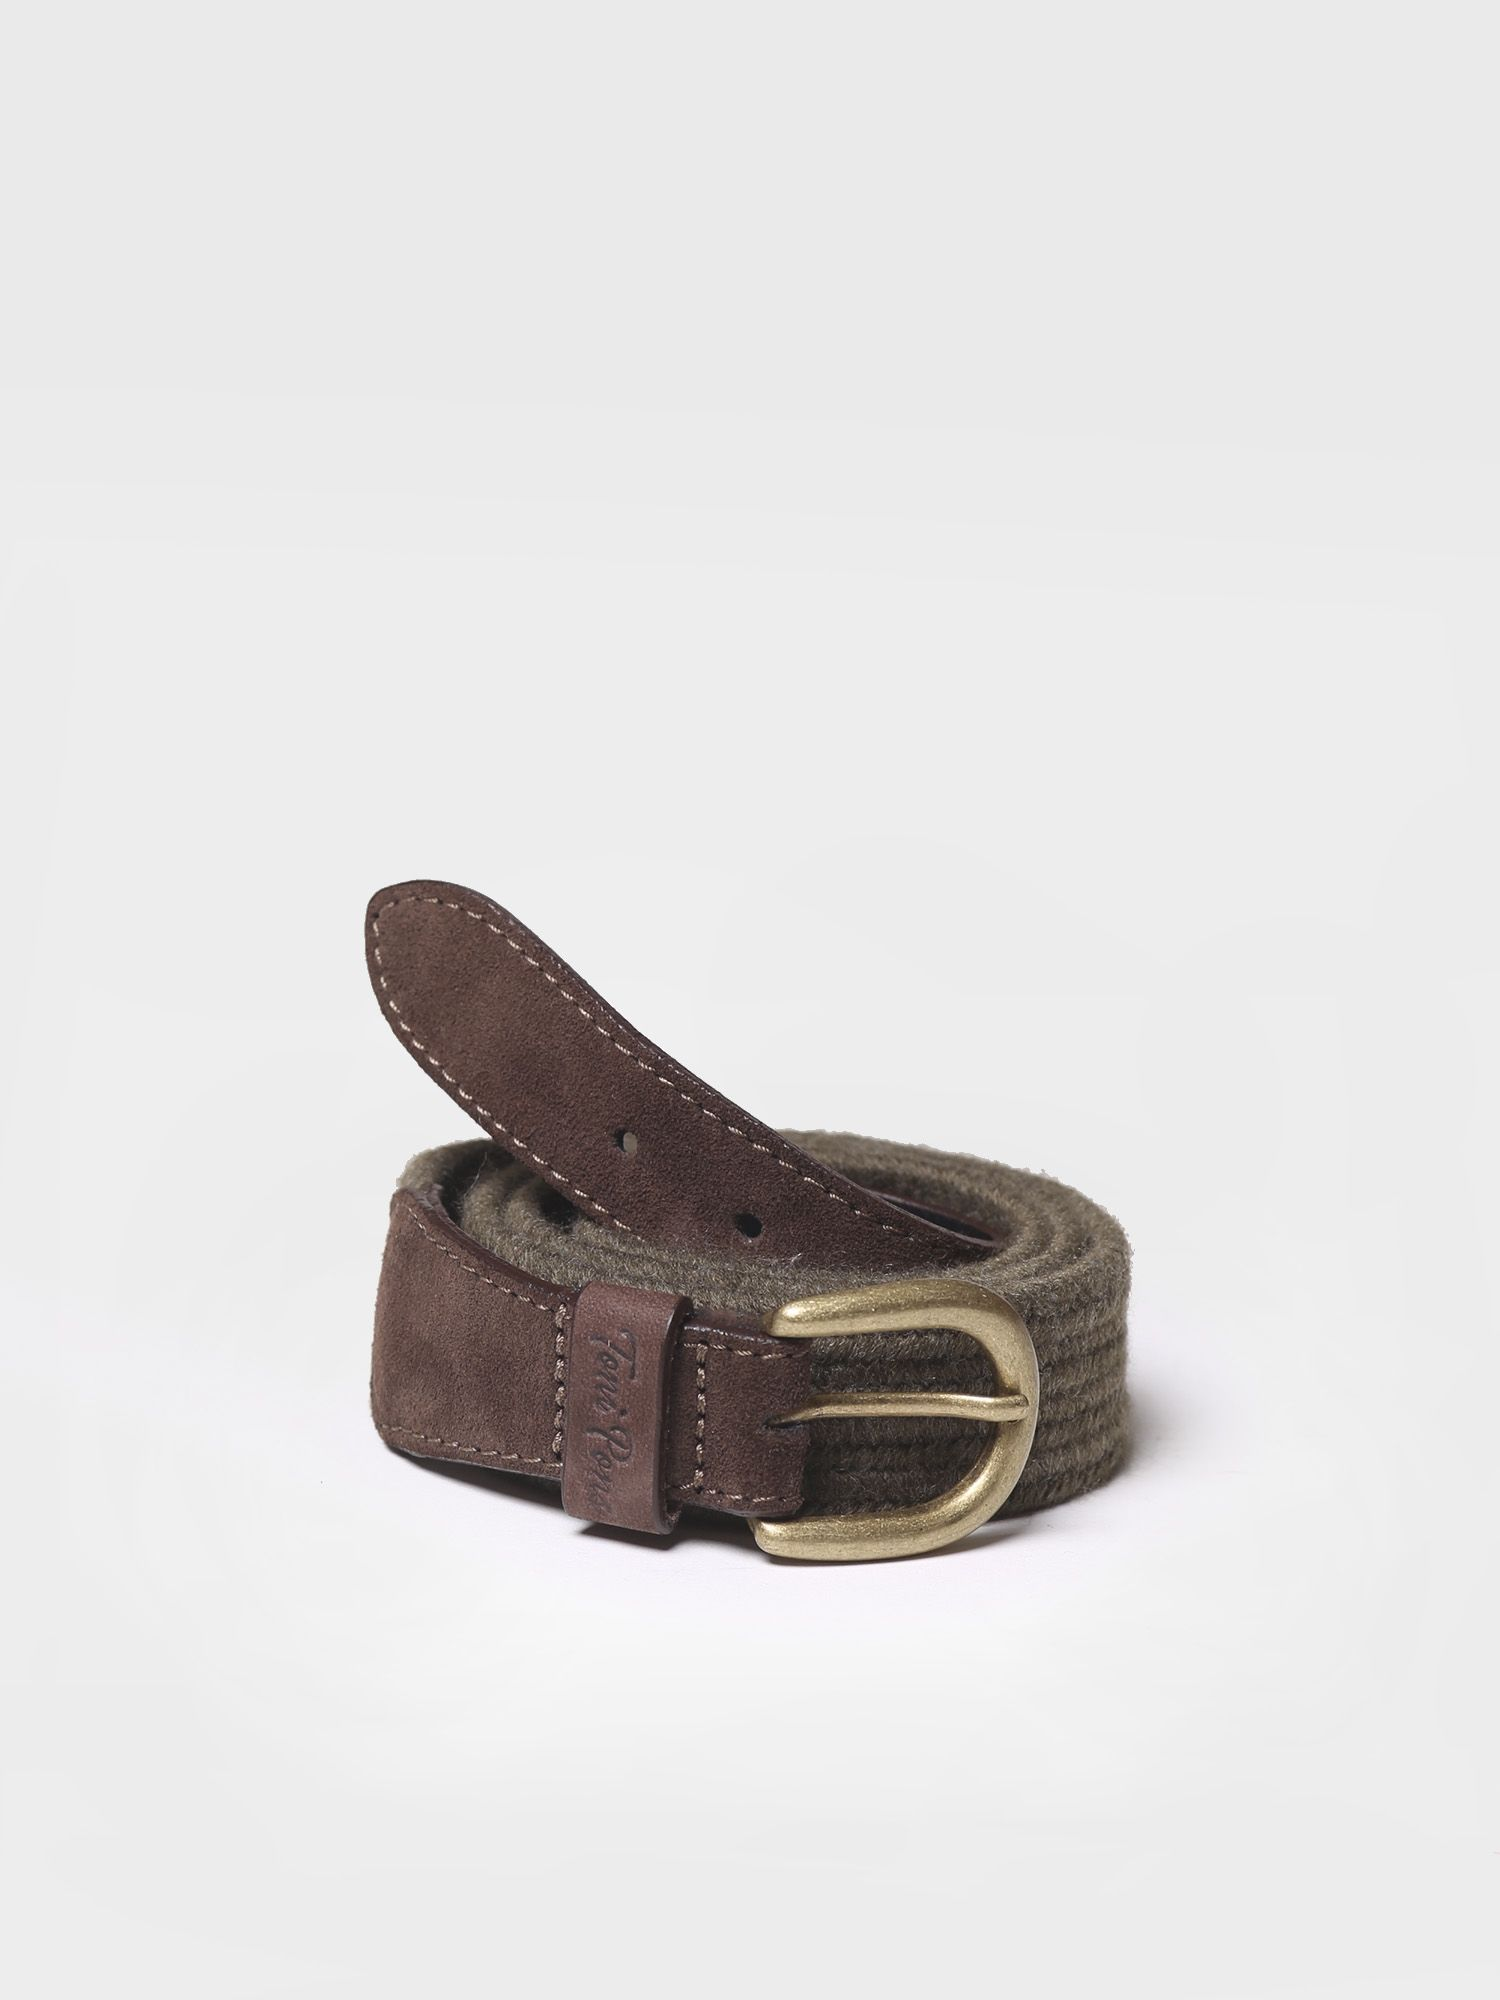 Belt in elastic fabric in khaki shades - NALA